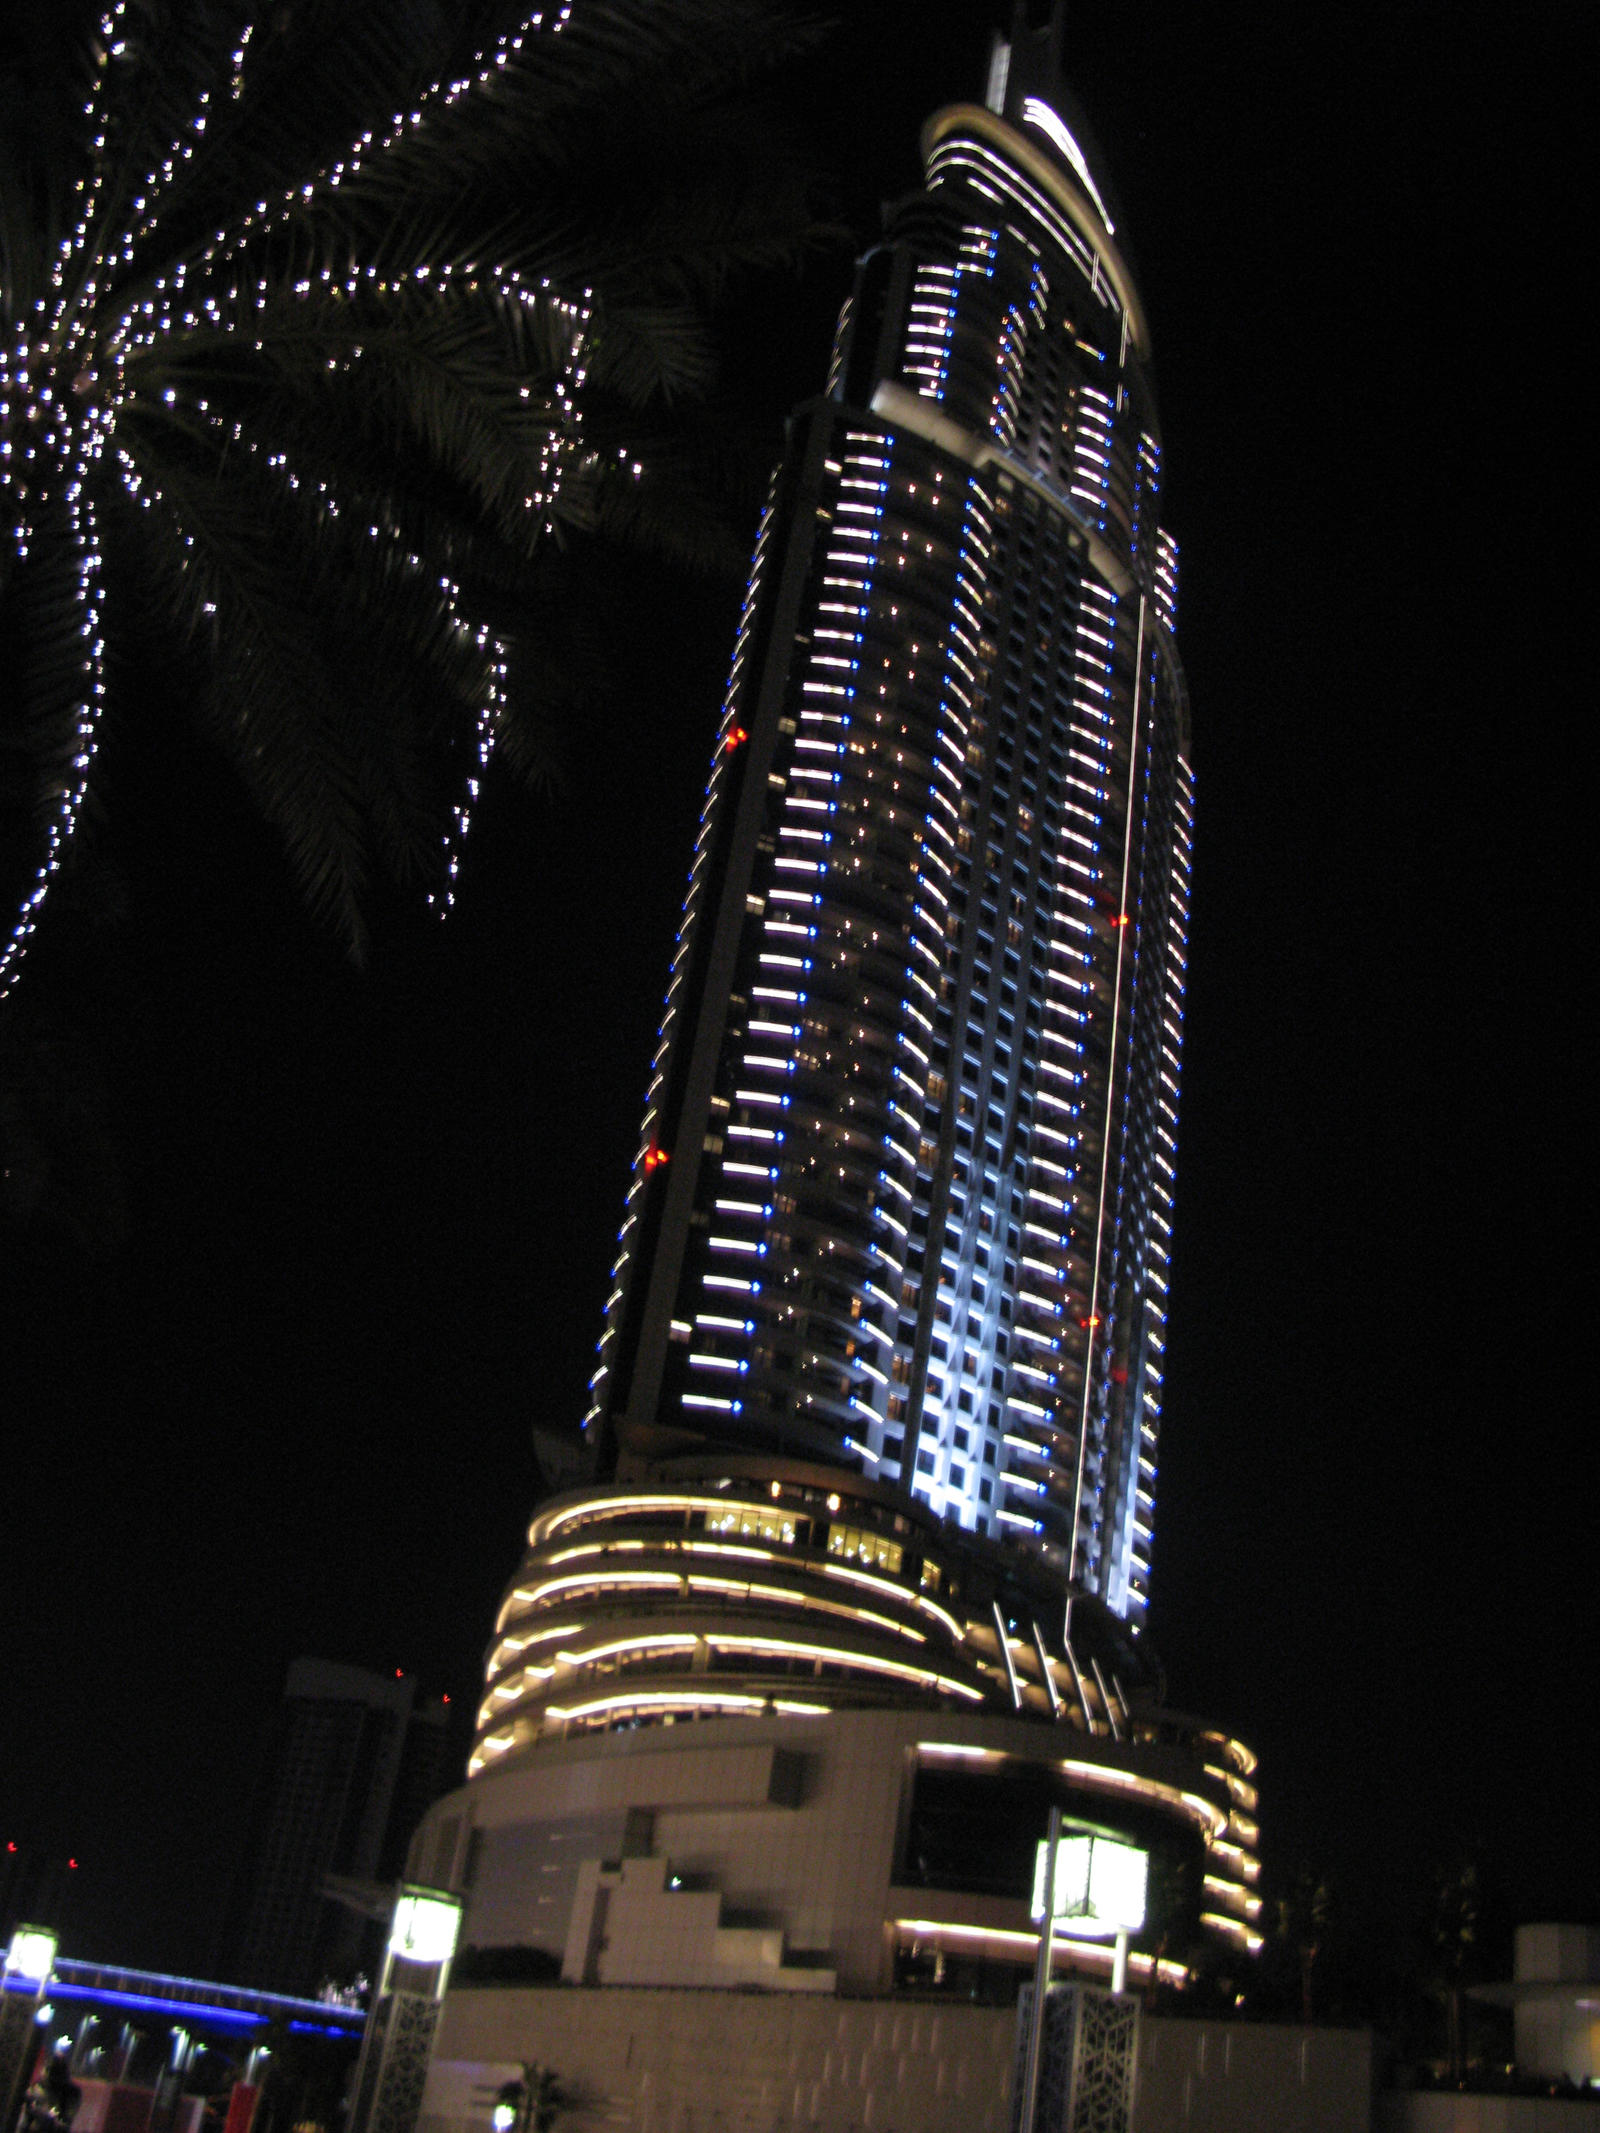 Hotel near dubai mall by aruthizar on deviantart for List of hotels in dubai with contact details